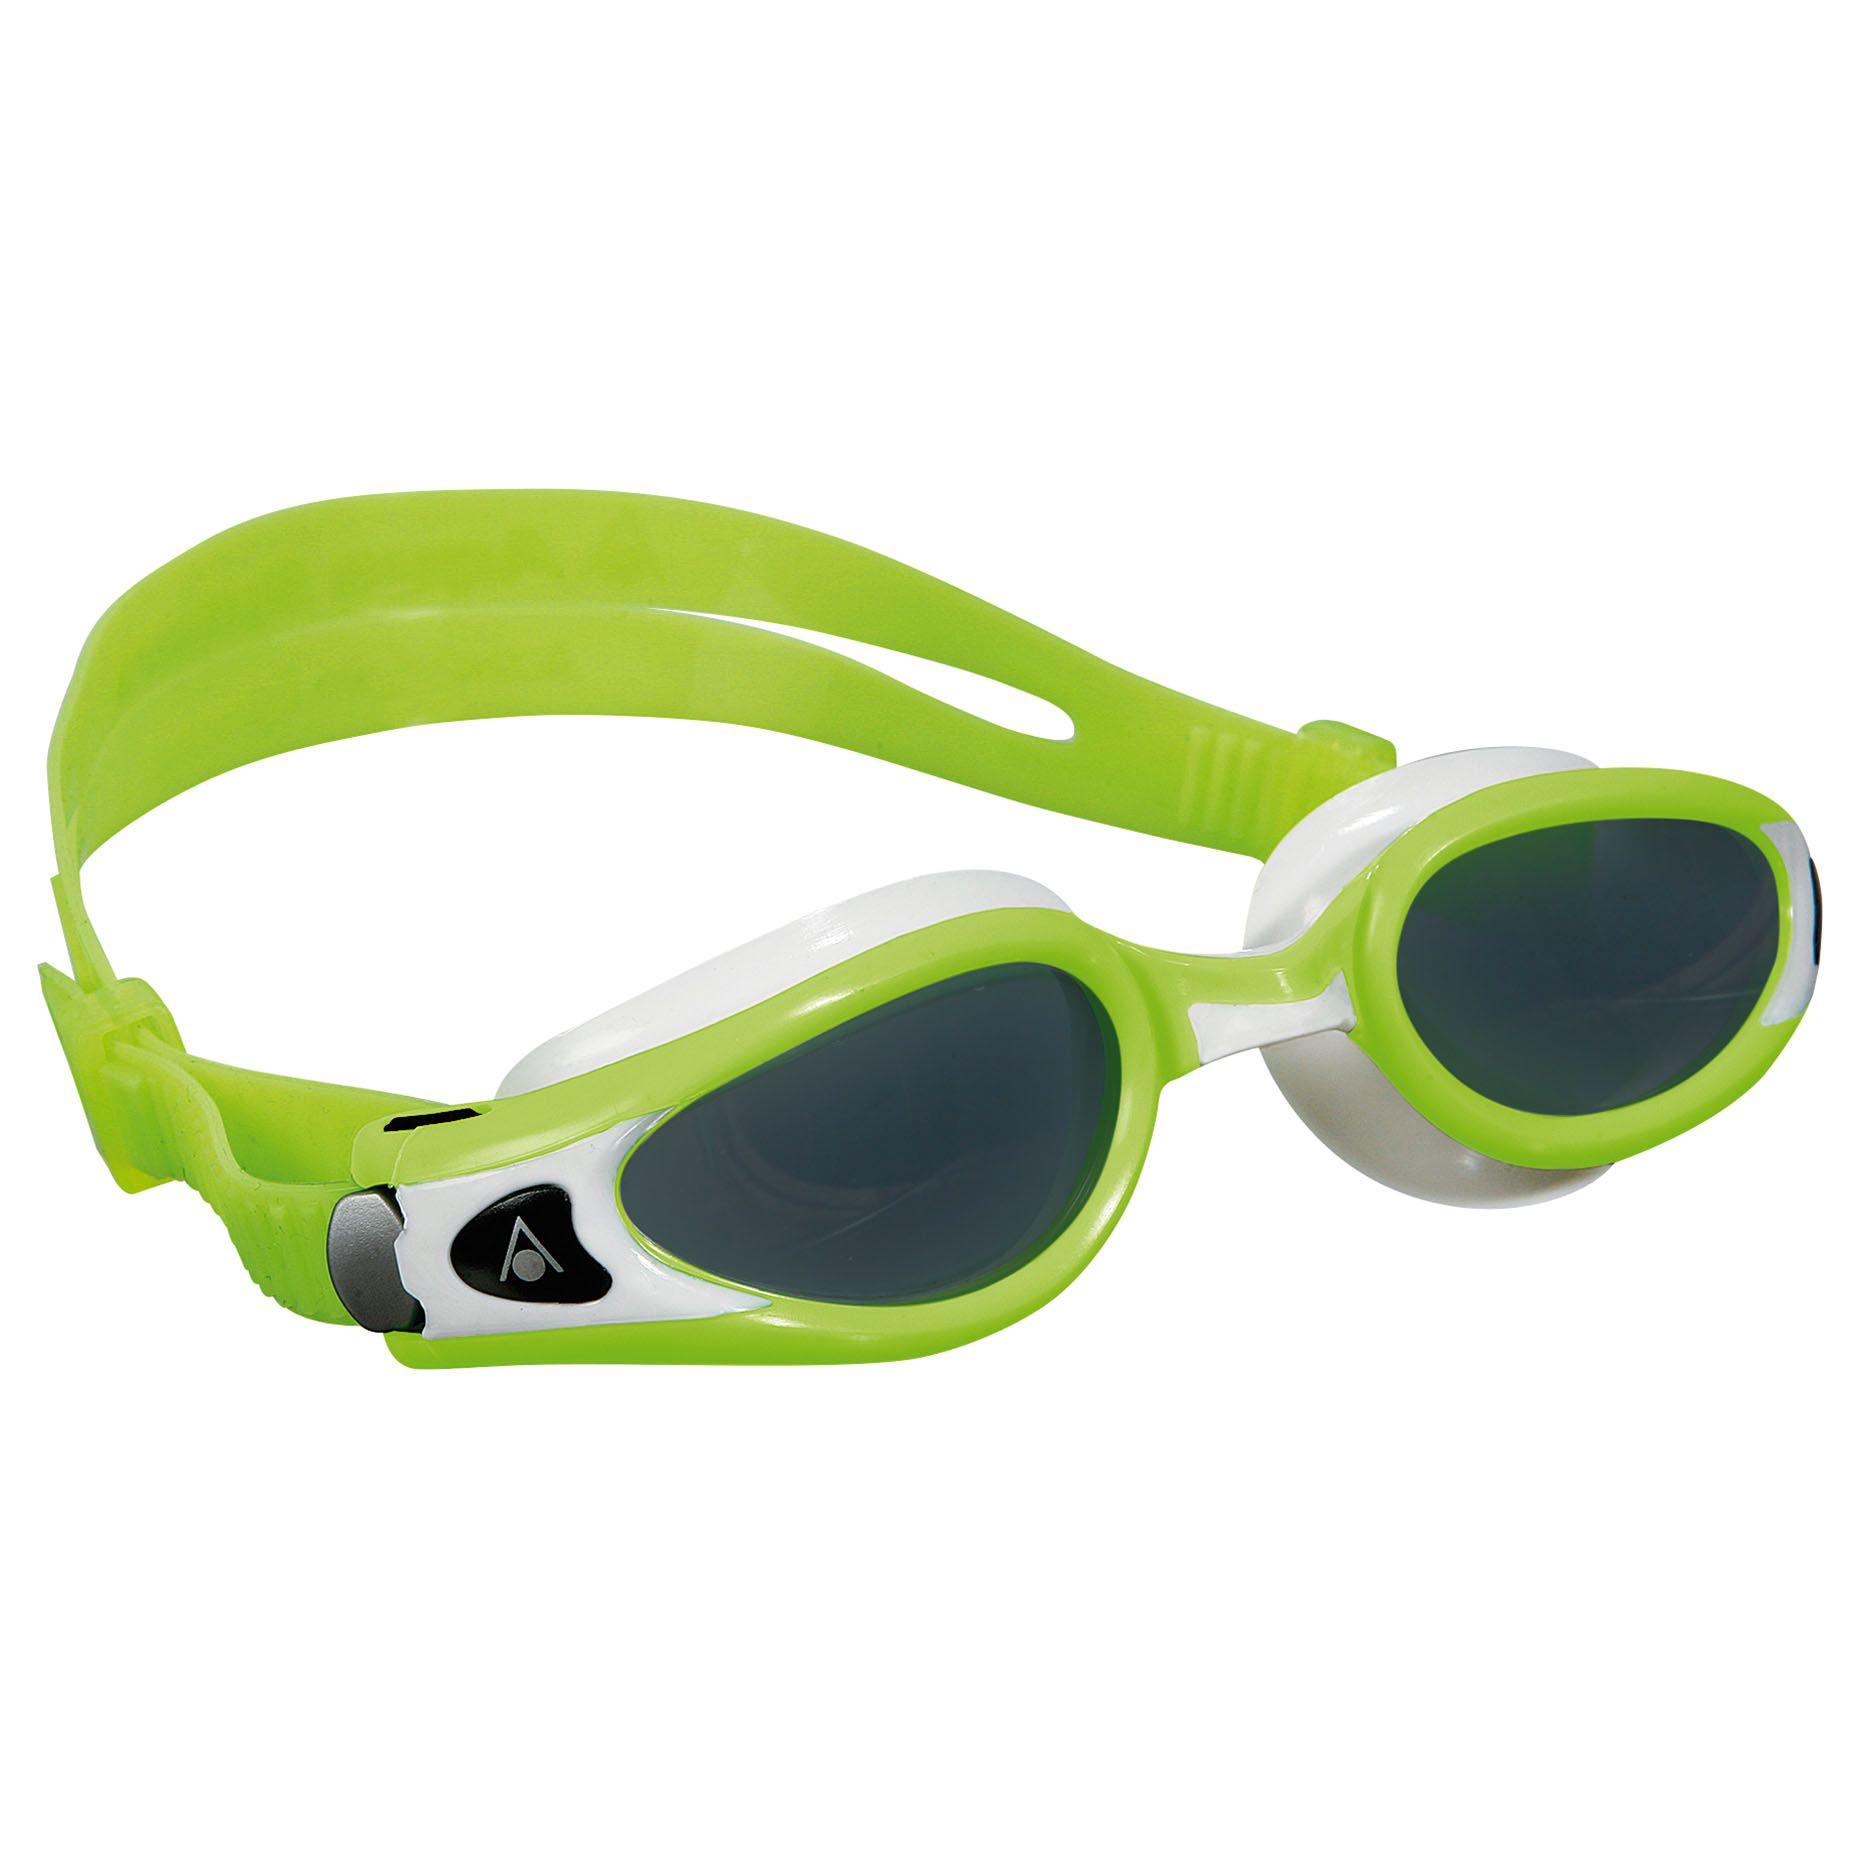 Aqua Sphere Kaiman Exo Small Fit Swimming Goggles Tinted